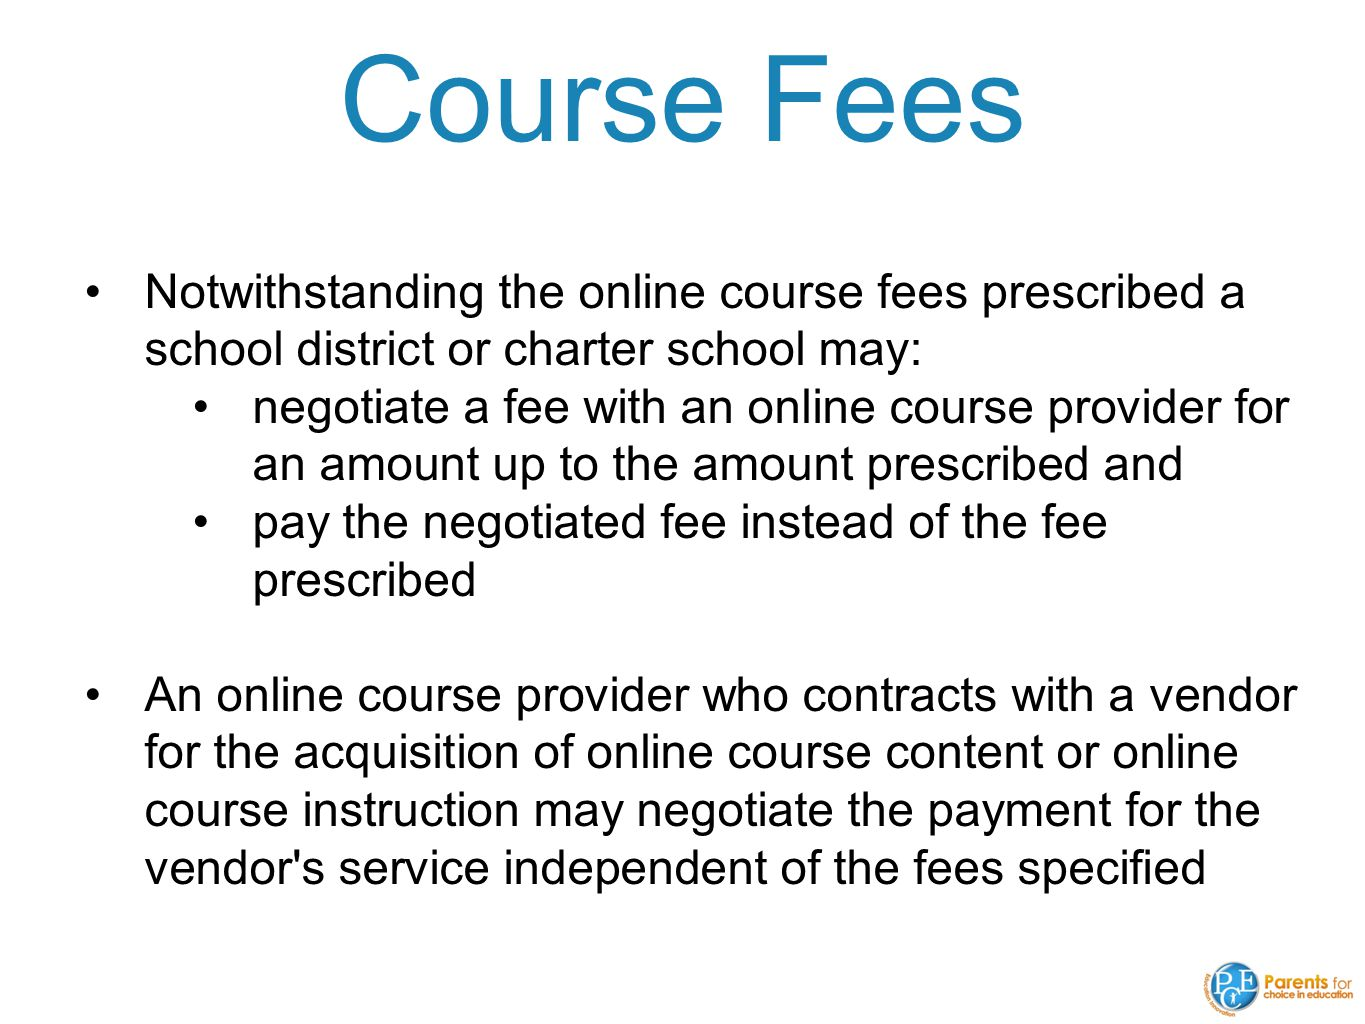 Course Fees Notwithstanding the online course fees prescribed a school district or charter school may: negotiate a fee with an online course provider for an amount up to the amount prescribed and pay the negotiated fee instead of the fee prescribed An online course provider who contracts with a vendor for the acquisition of online course content or online course instruction may negotiate the payment for the vendor s service independent of the fees specified